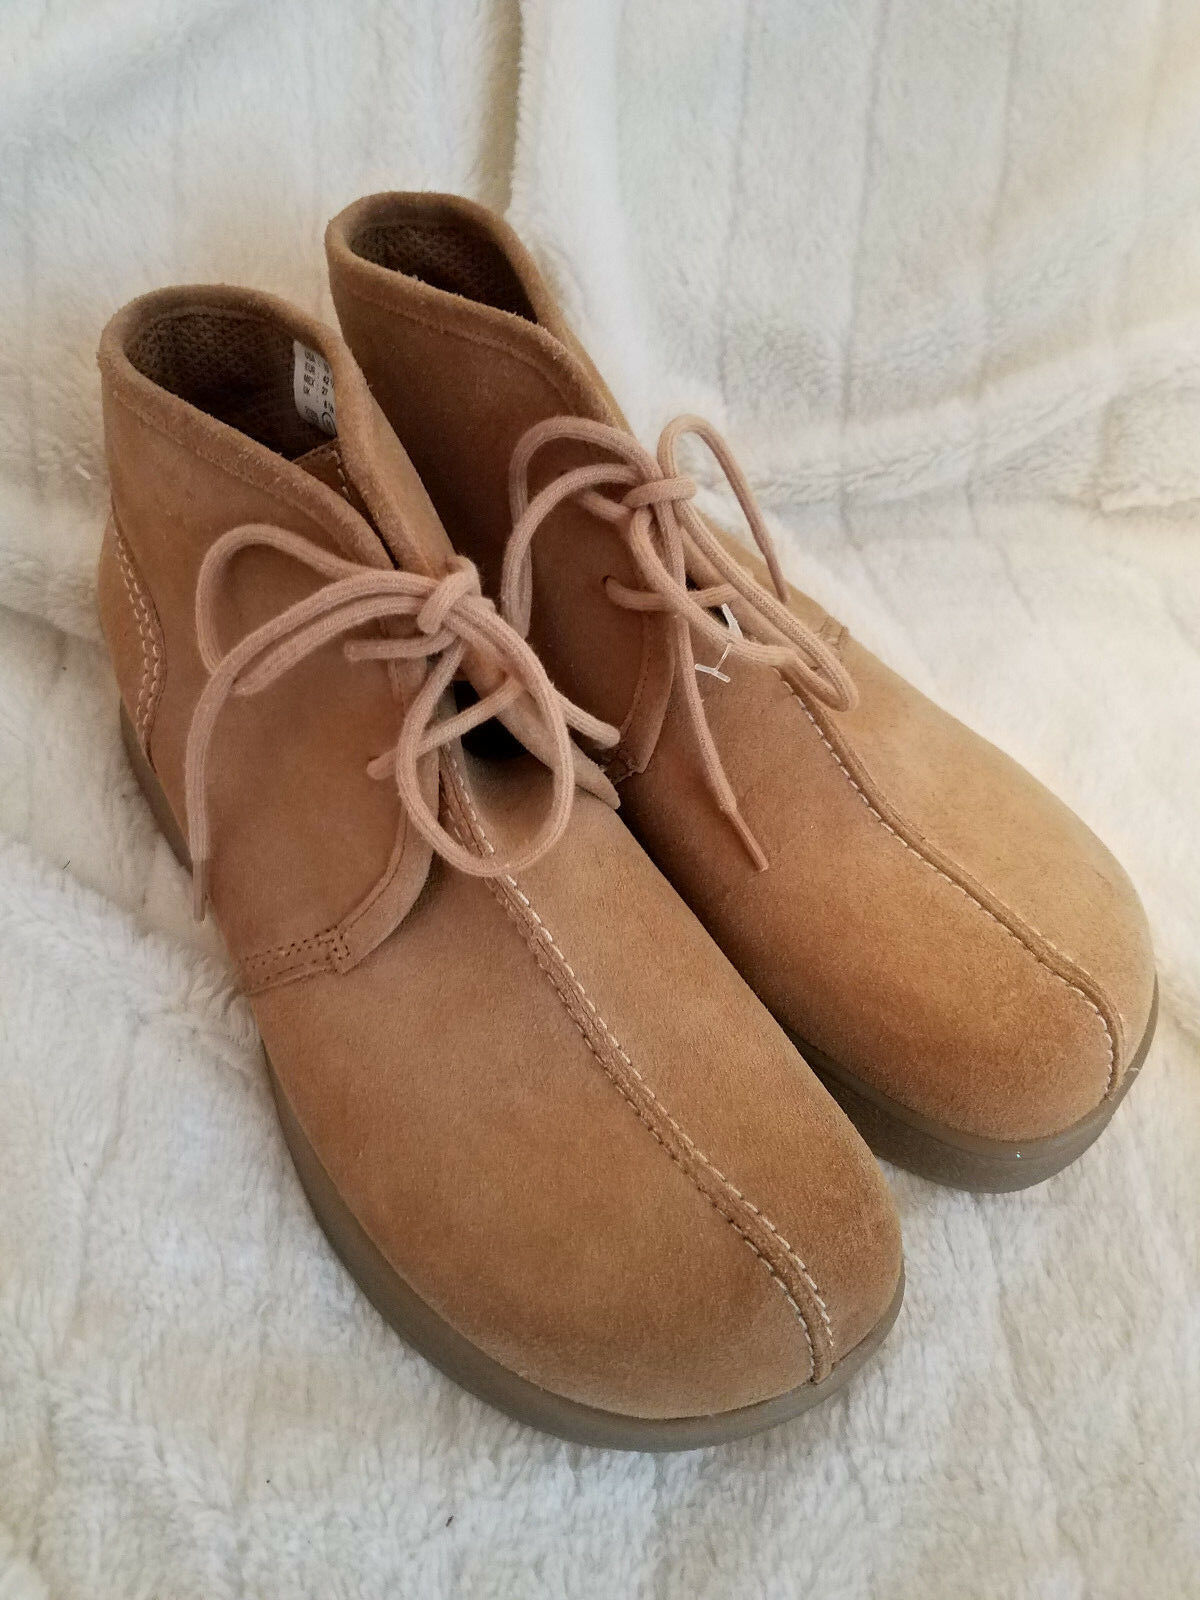 LOWER EAST SIDE Chunky Wedge Suede Ankle Boots TAN Womens Size 10